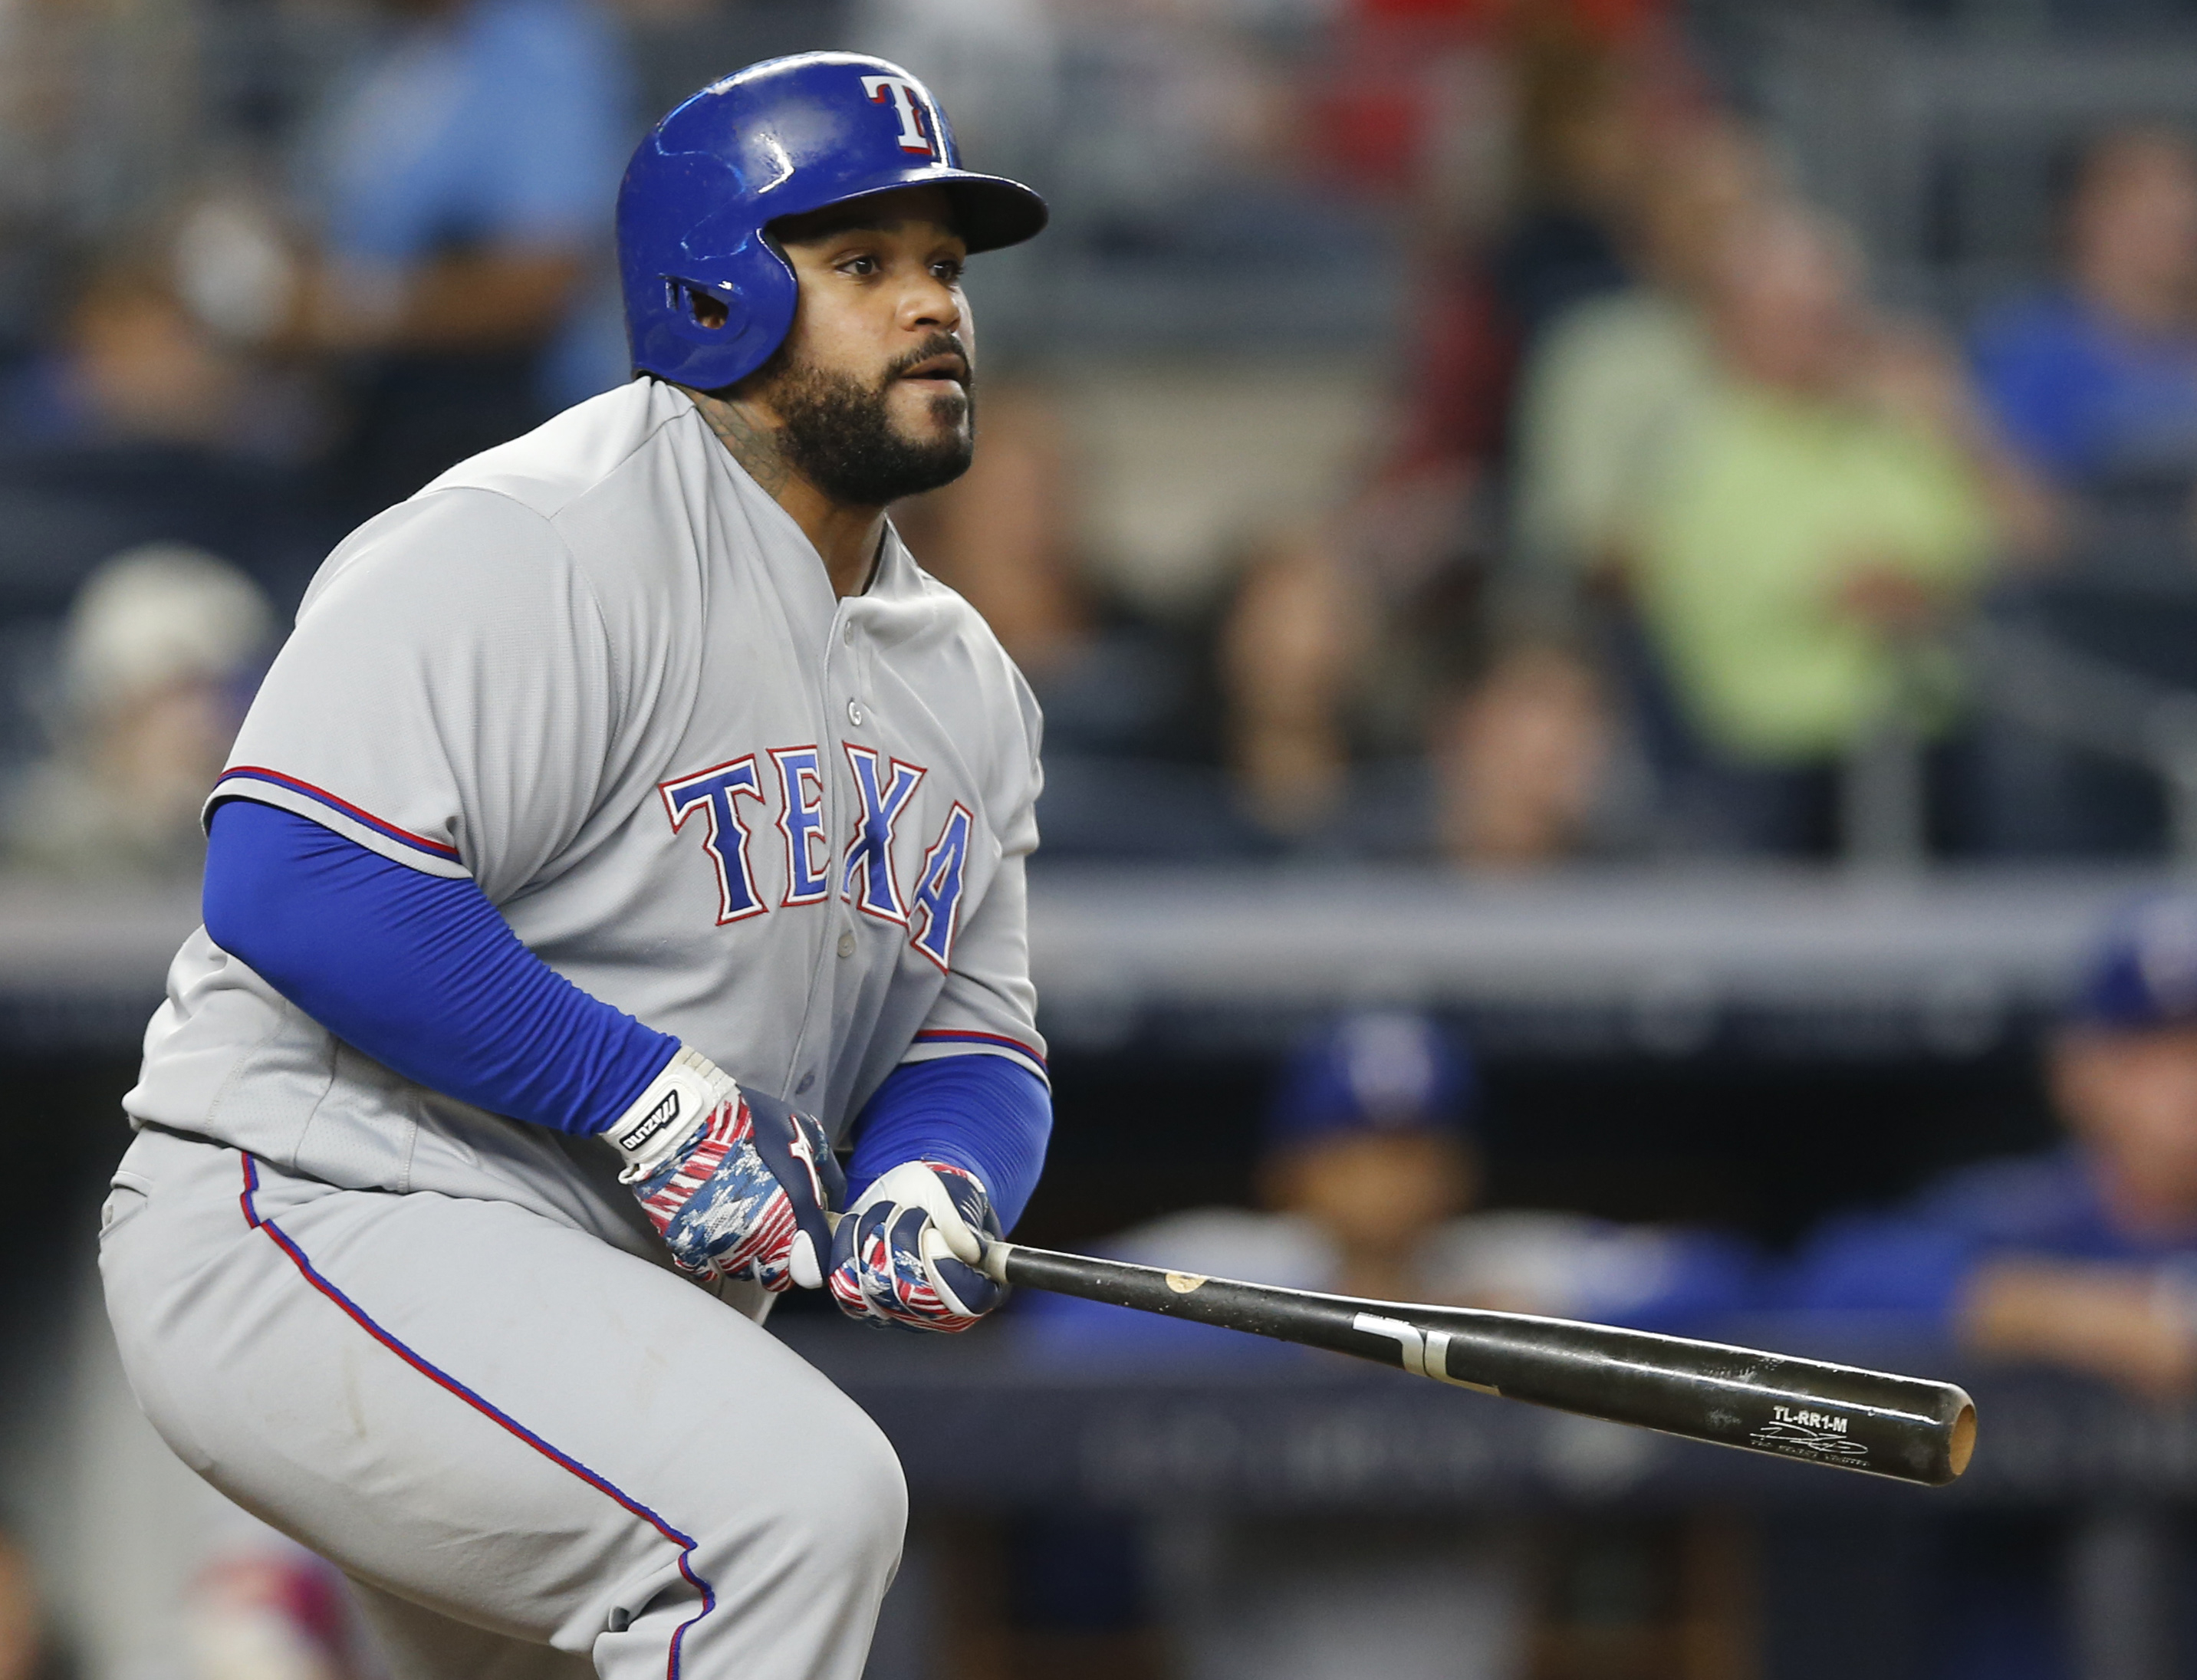 FILE - In this Tuesday, June 28, 2016 file photo Texas Rangers' Prince Fielder watches his eighth-inning RBI double during a baseball game against the New York Yankees in New York.  Texas Rangers slugger Prince Fielder is facing the prospect of season-end